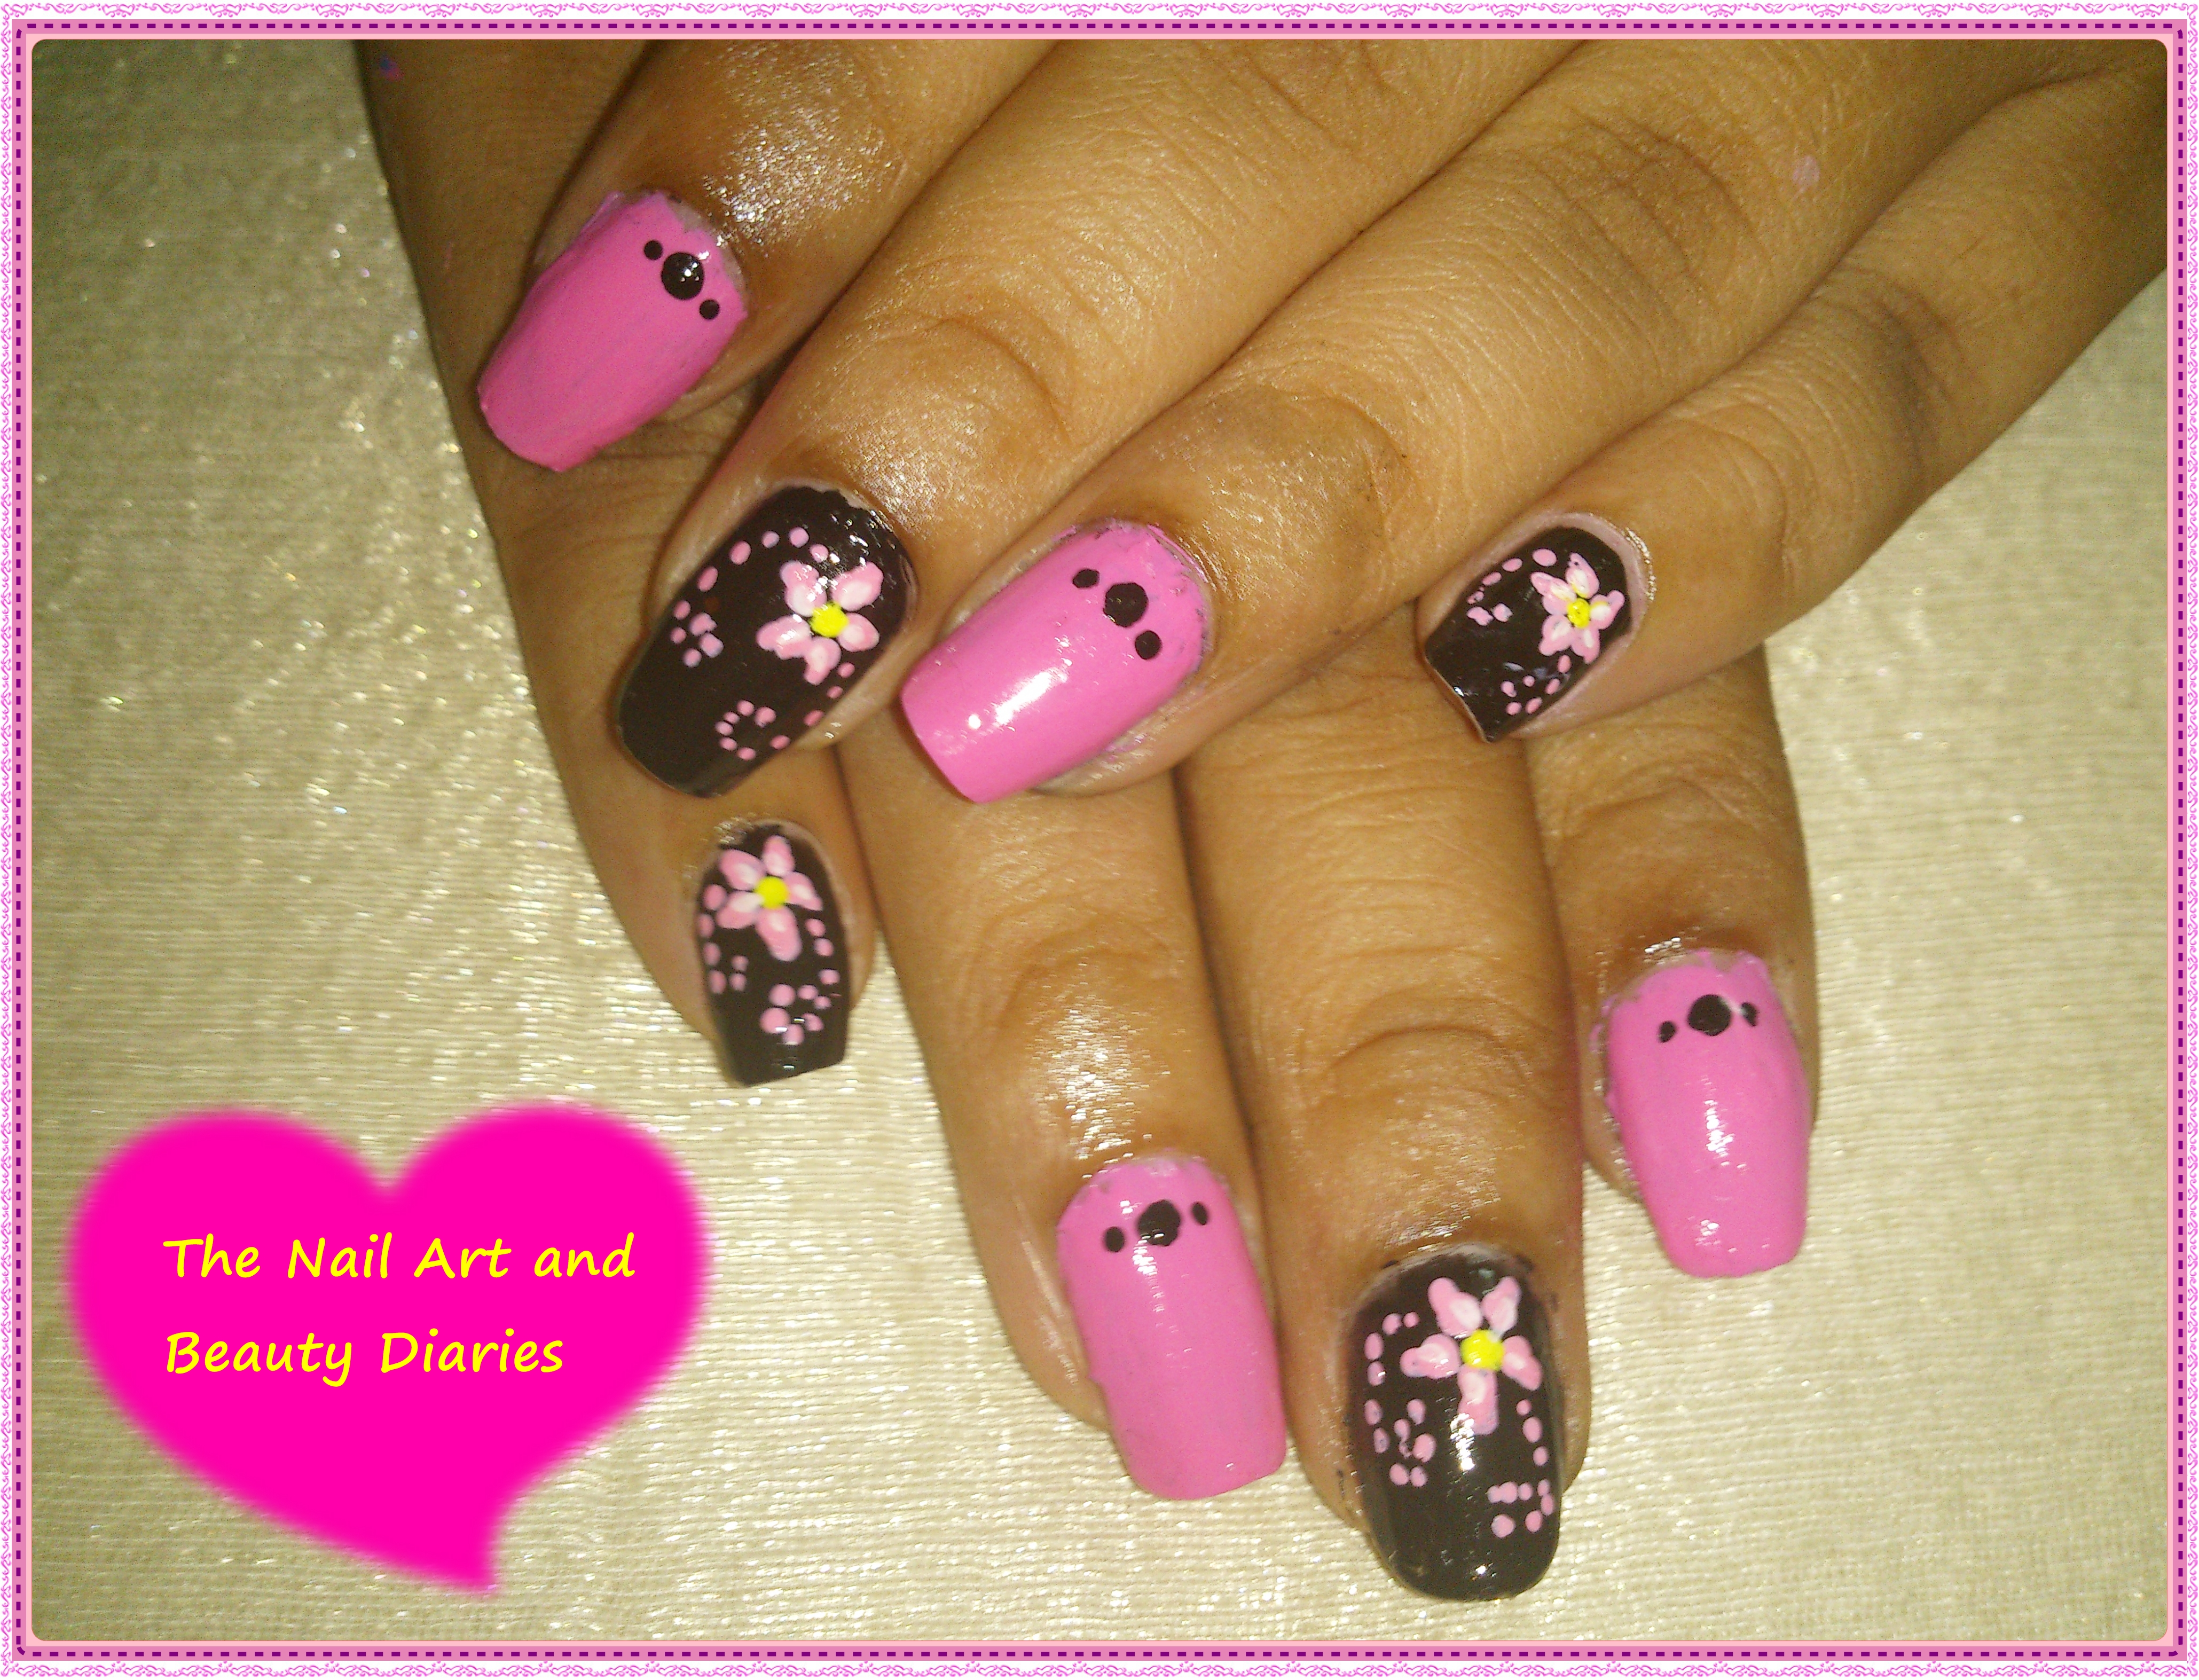 Easy At Home Nail Art 22 – The Pink Fairy and the Black Witch Nail ...